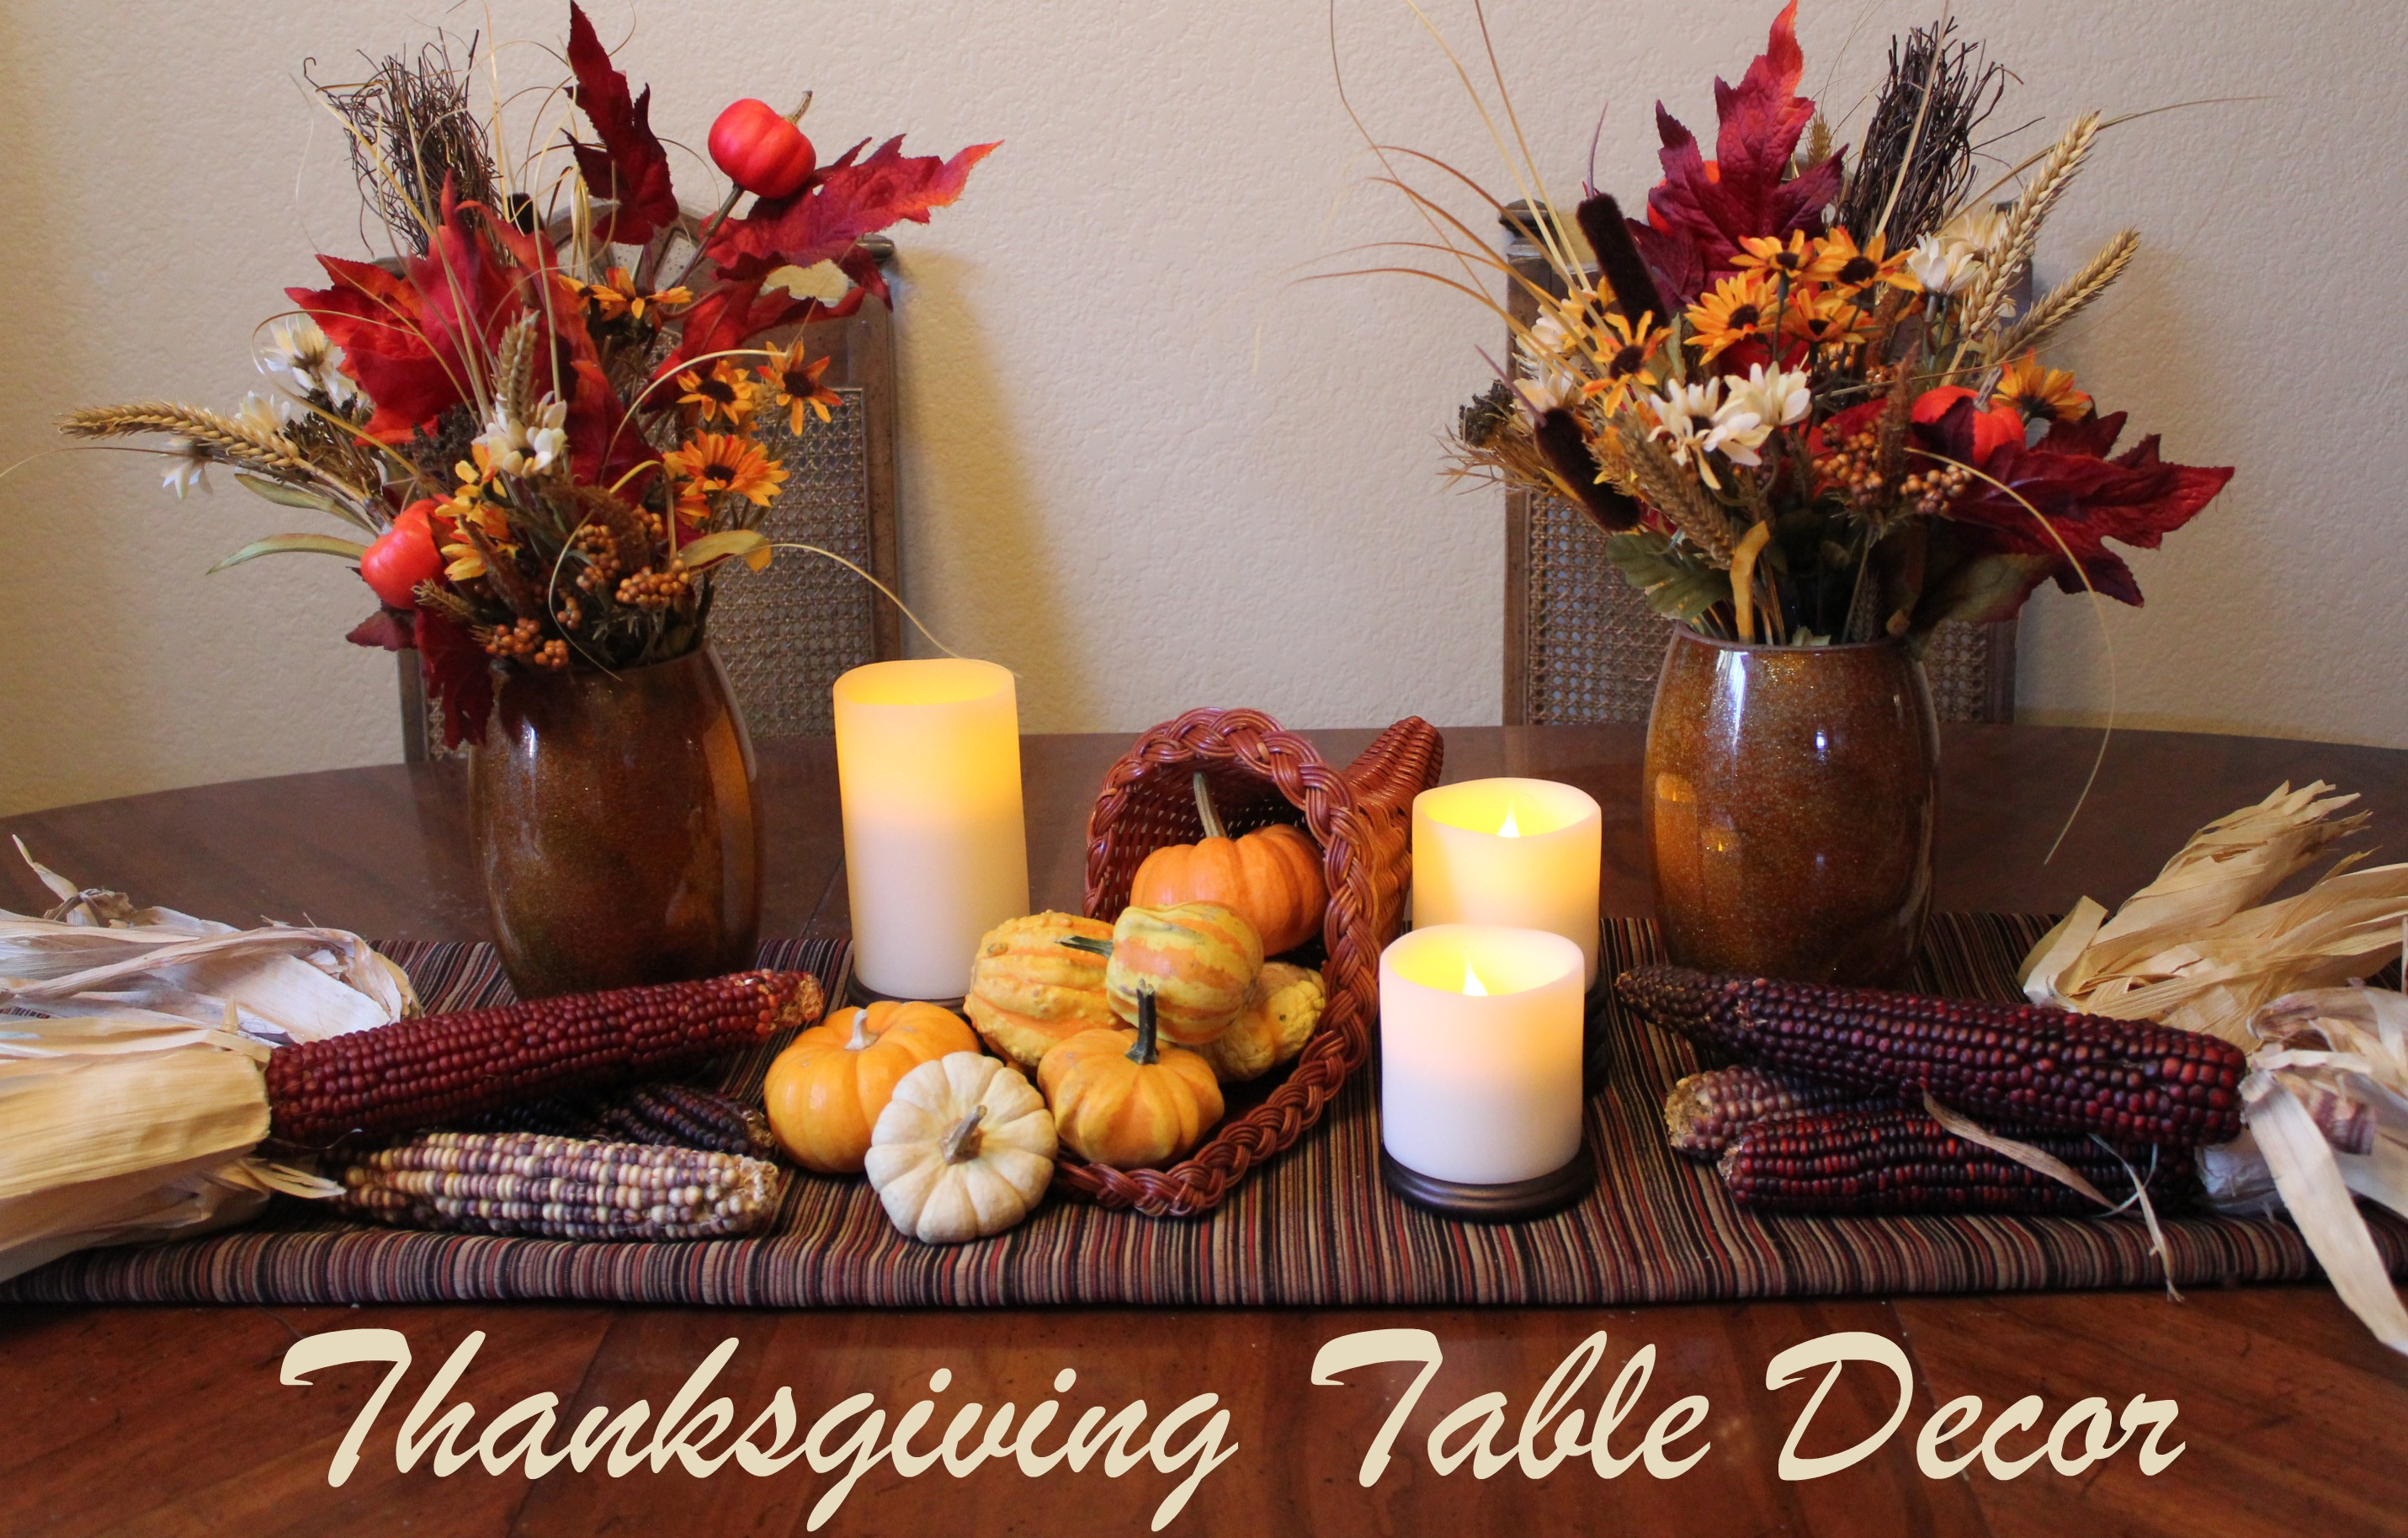 Cornucopia of creativity diy thanksgiving table decor Cheap thanksgiving table setting ideas